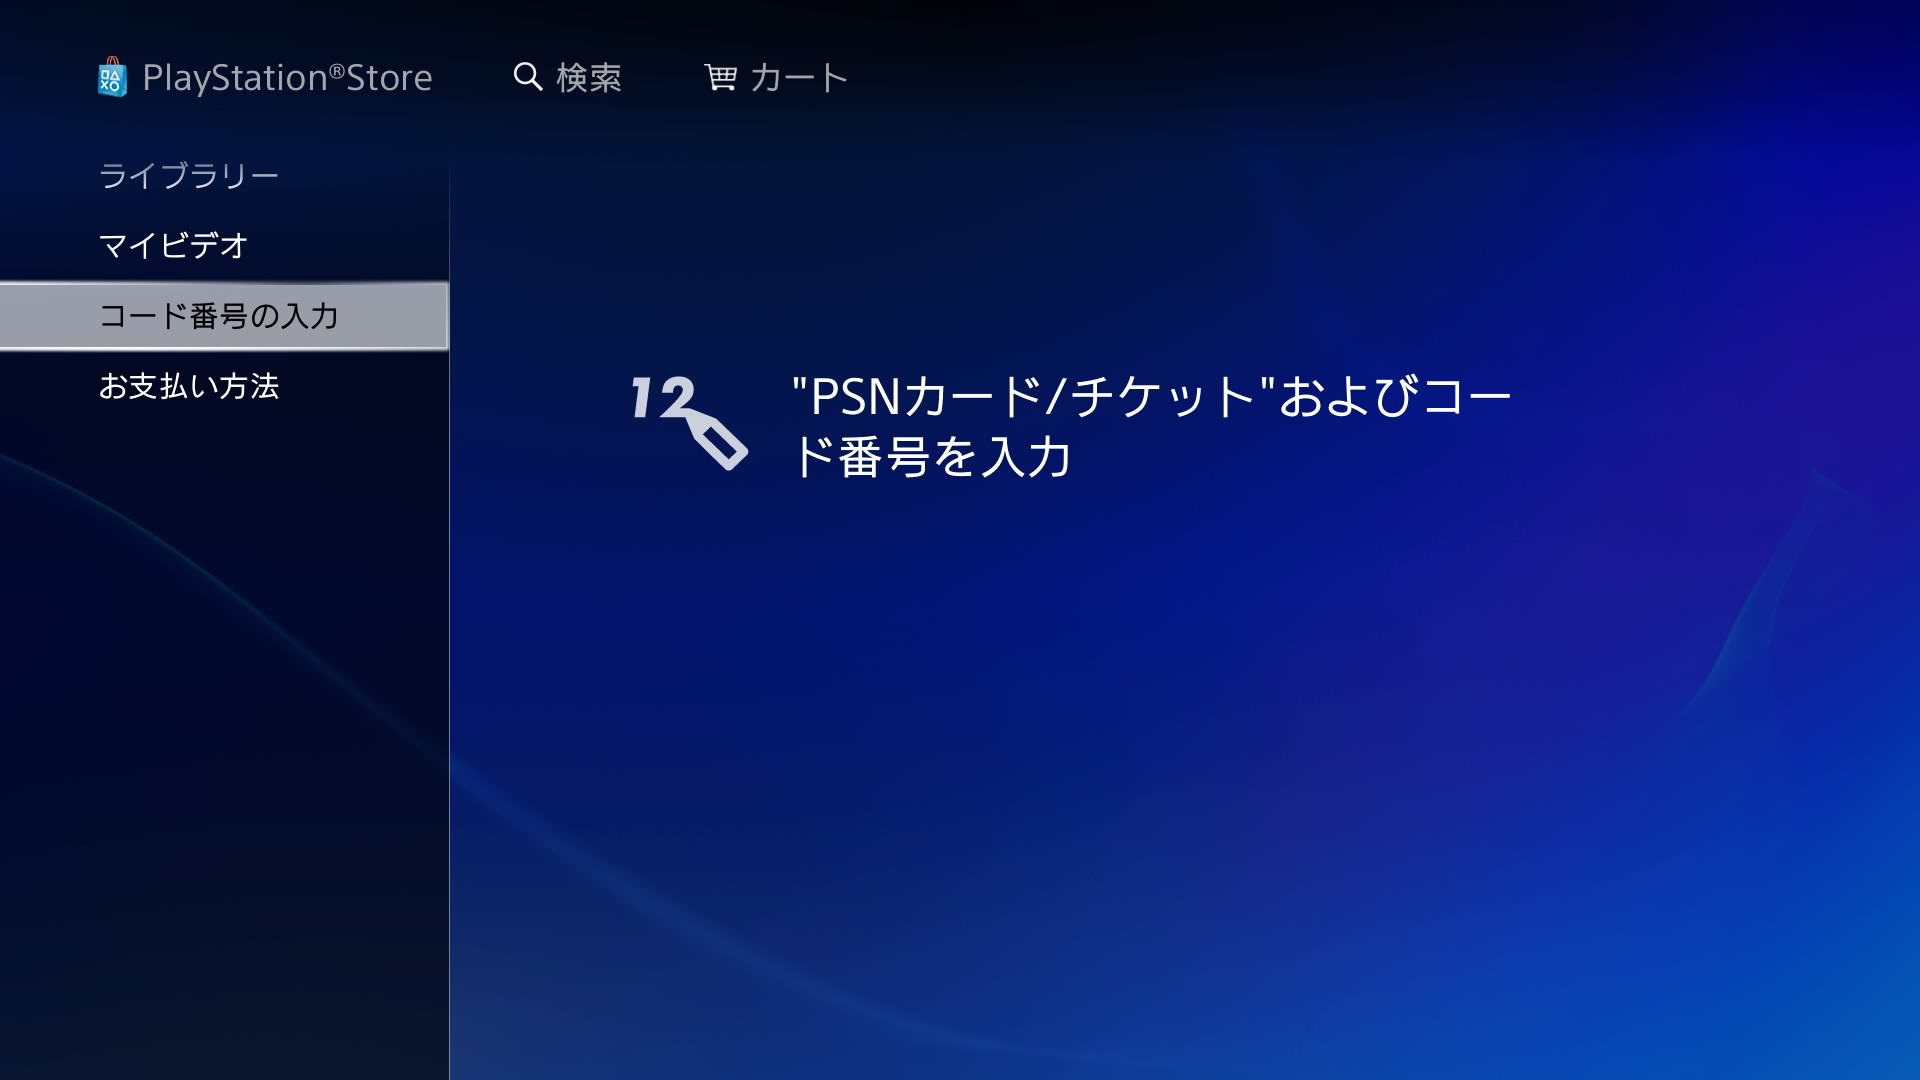 How to download product code contents for playstation 4 1